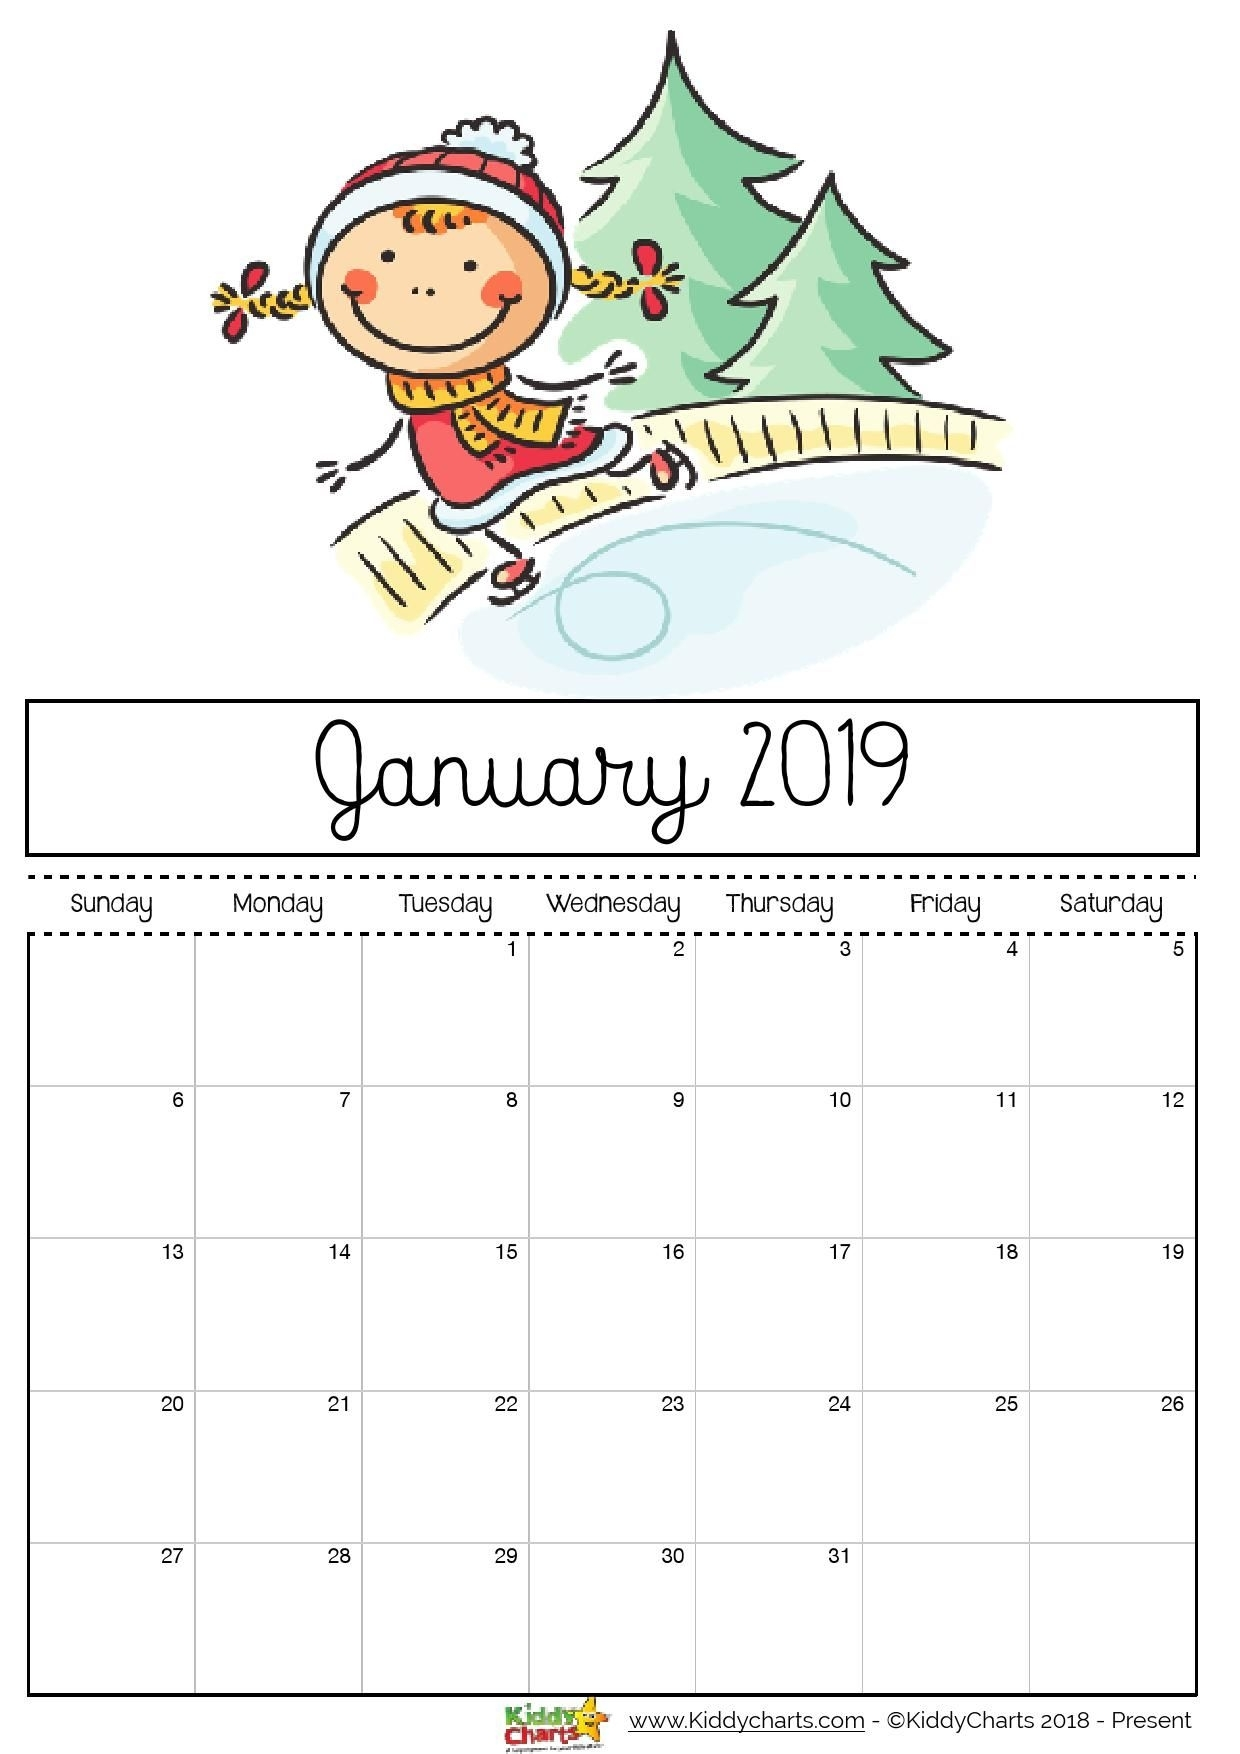 Check Out Our Fantastic Free 2019 Calendar For Your Child's